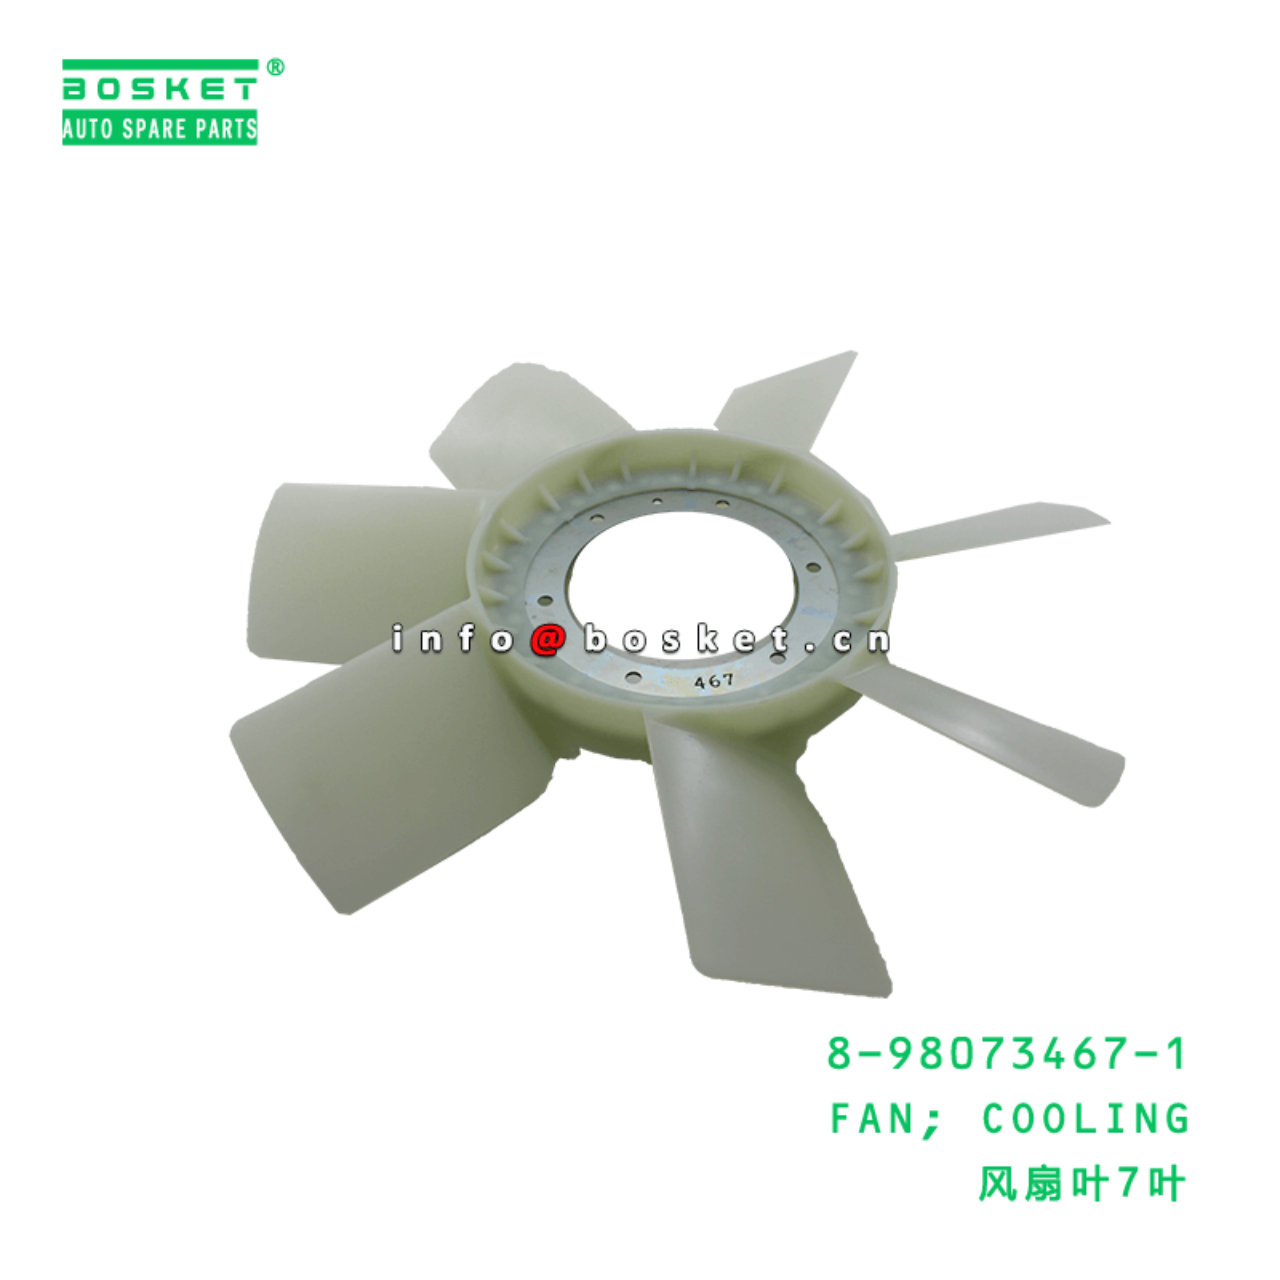 8-98073467-1 Cooling Fan 8980734671 Suitable for ...